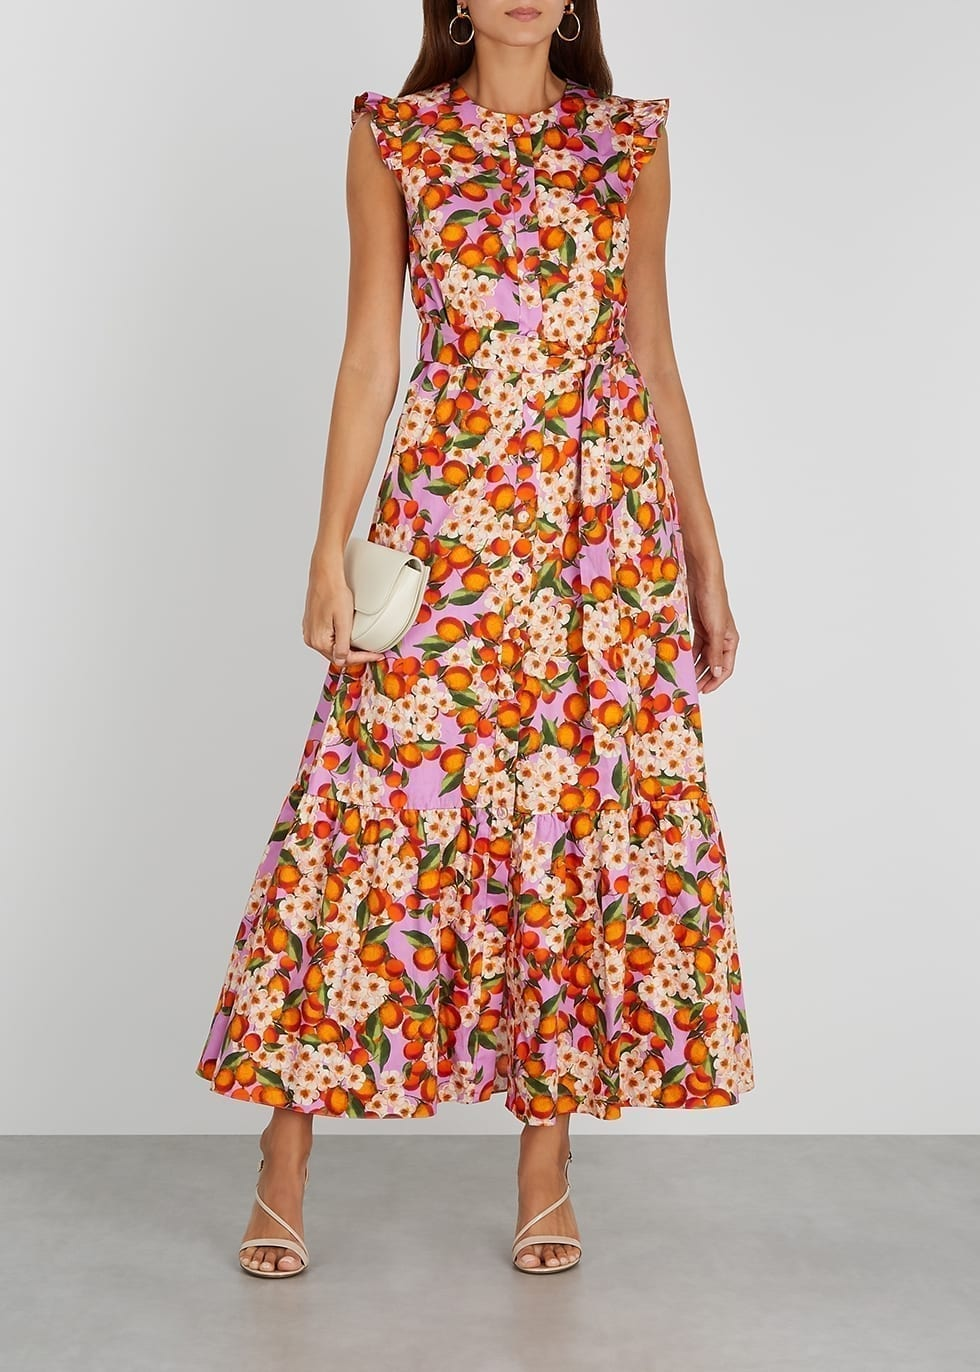 BORGO DE NOR Gabrielle Floral-print Cotton Midi Dress